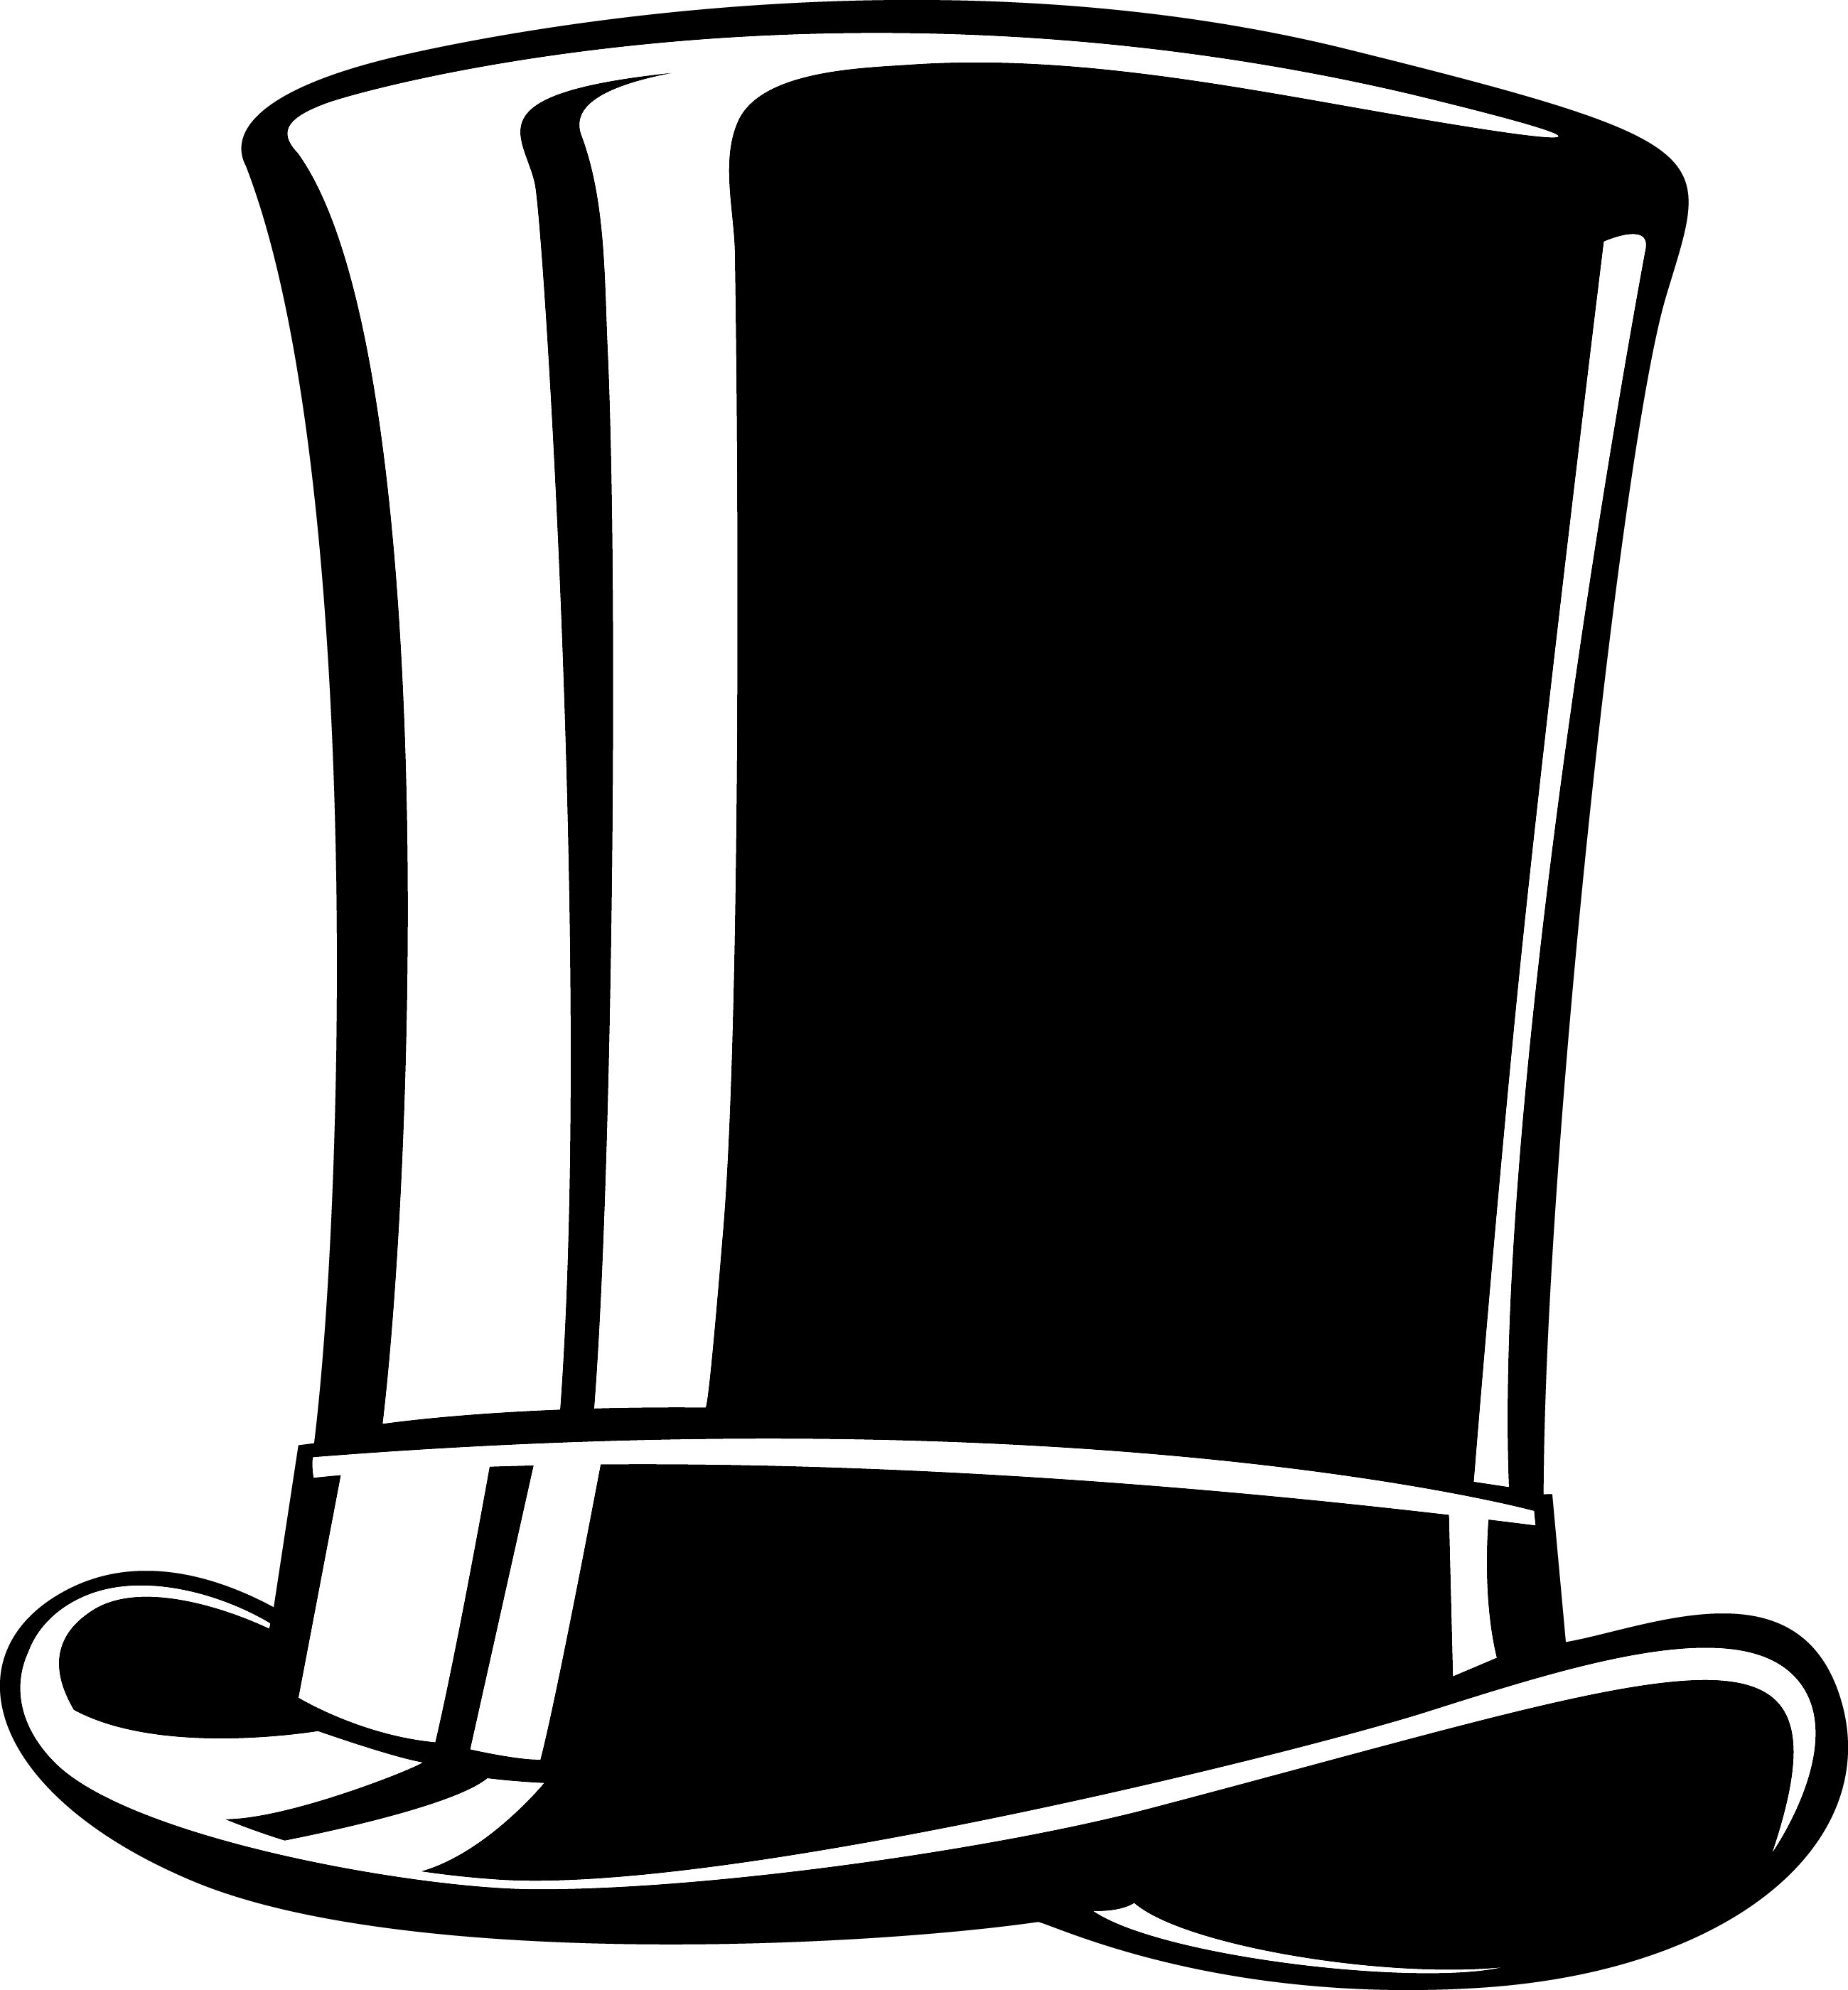 Abraham lincoln clipart lincoln top hat, Abraham lincoln.